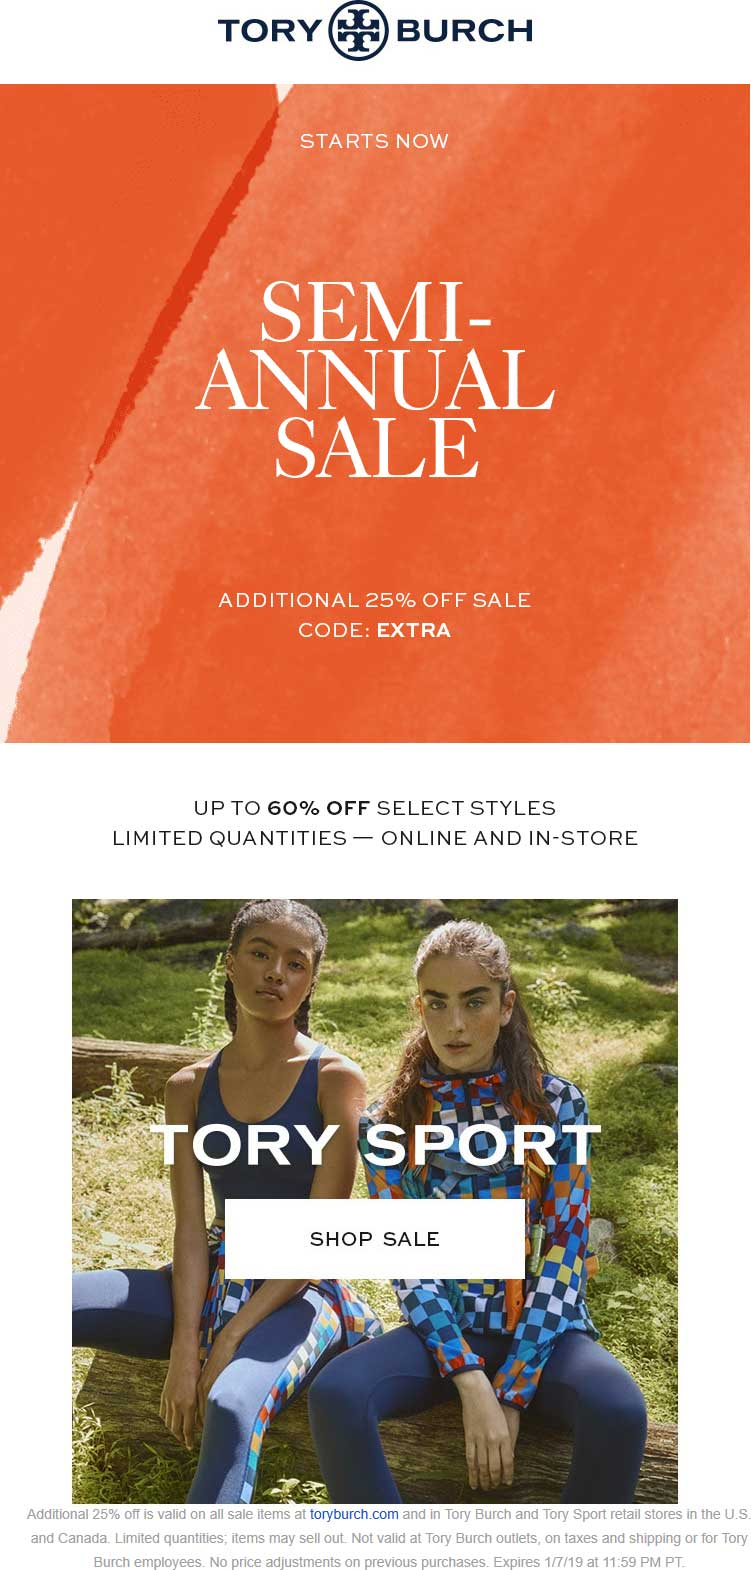 Tory Burch Coupon August 2020 Extra 25% off sale items at Tory Burch, or online via promo code EXTRA